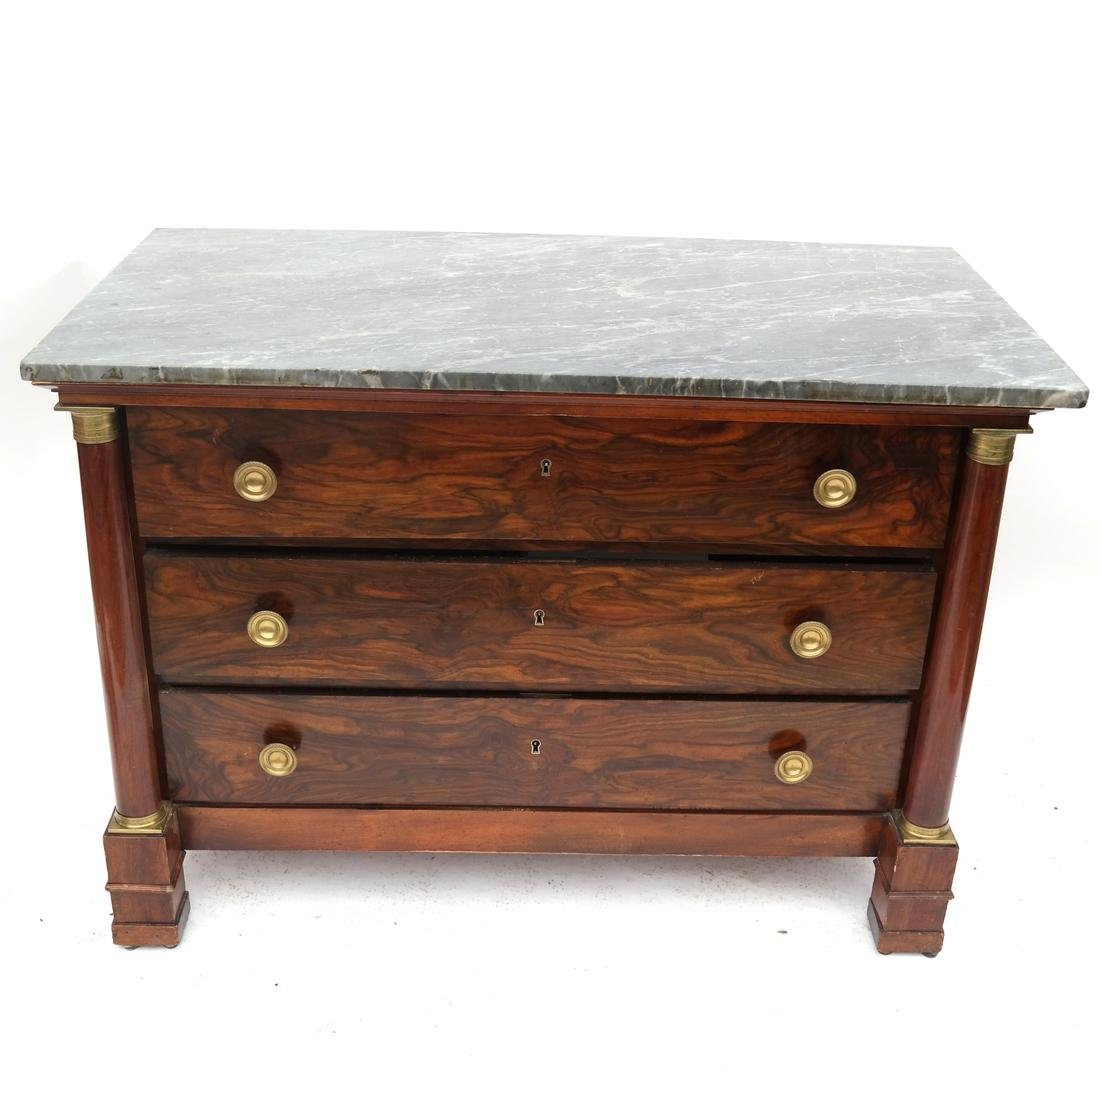 Antique American Empire Butler's Chest